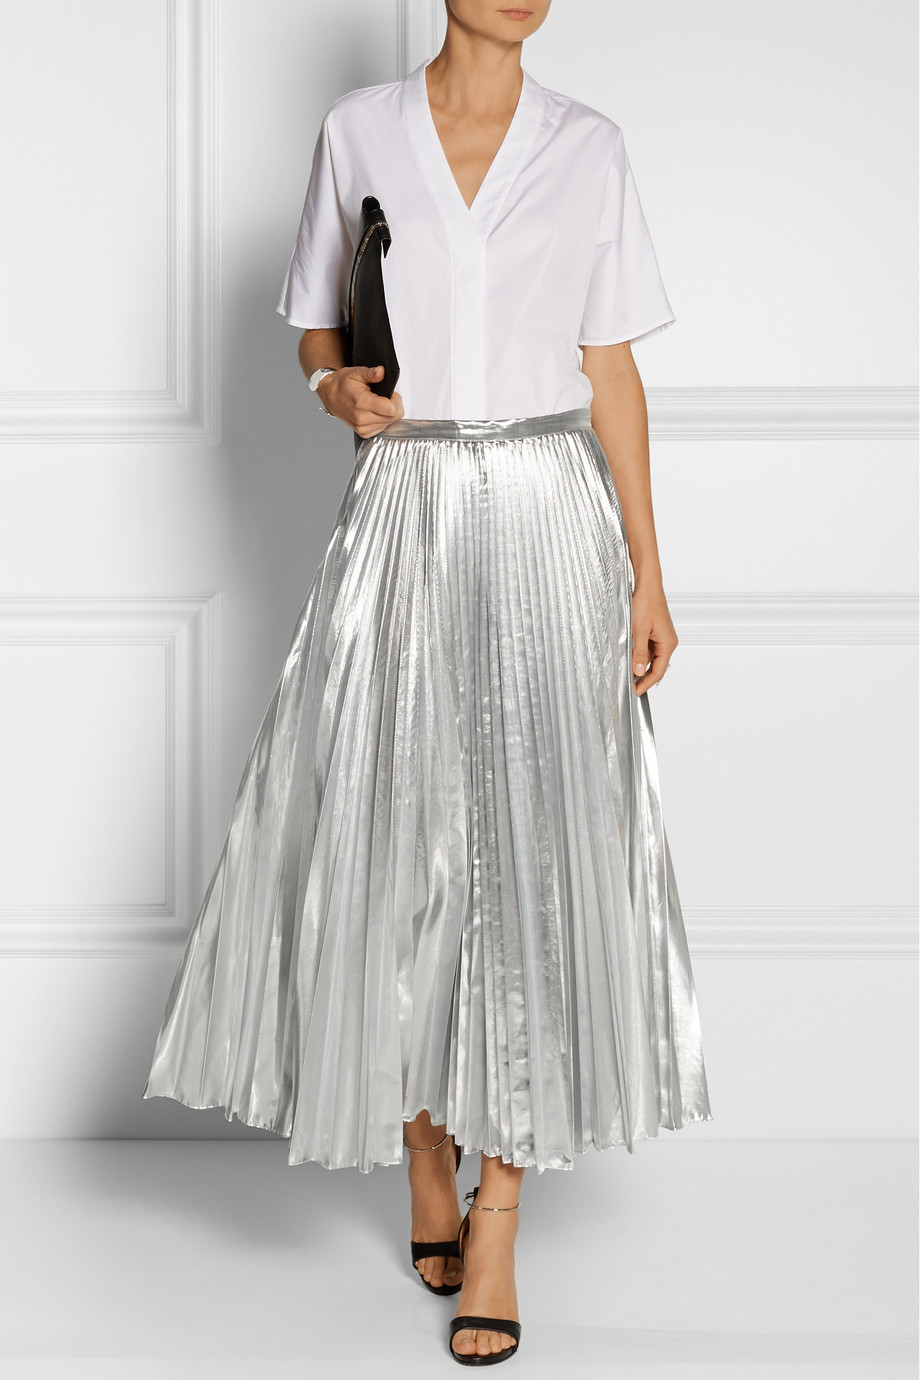 Silver Metallic Skirt 118